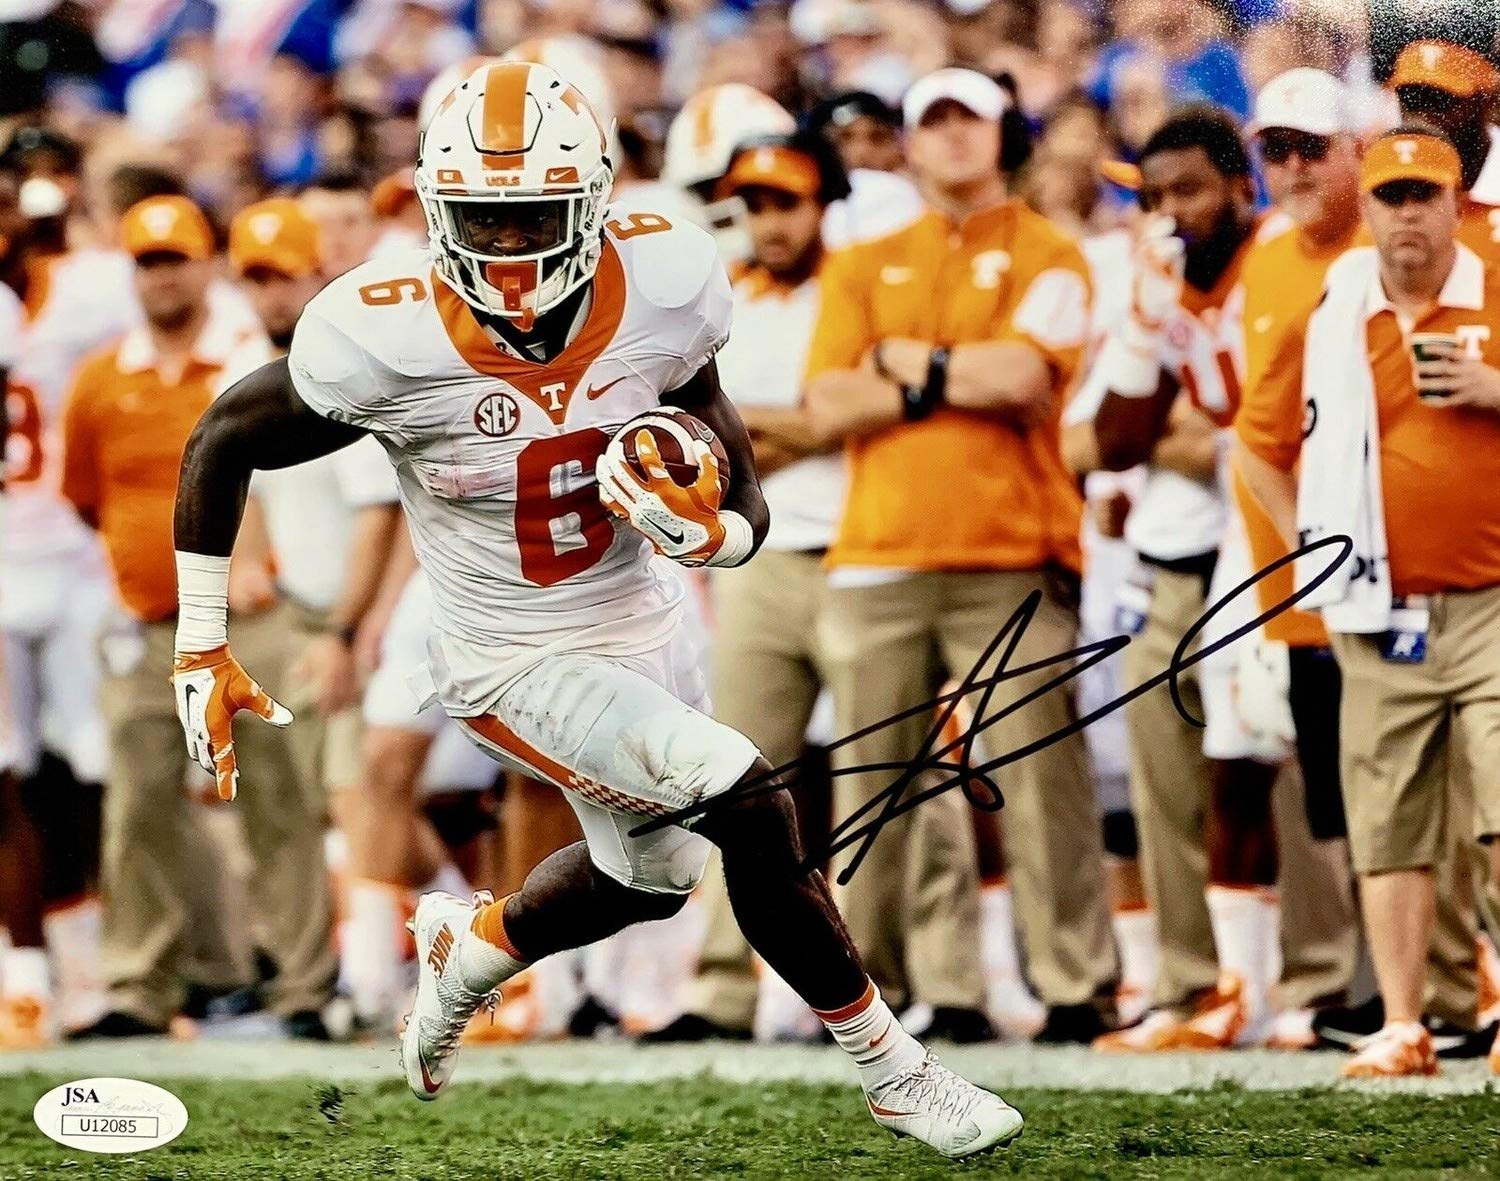 d14e1ba4 Alvin Kamara Autographed Signed Autograph Tennessee Volunteers 8x10 Photo  JSA Authentic U12085 at Amazon's Sports Collectibles Store